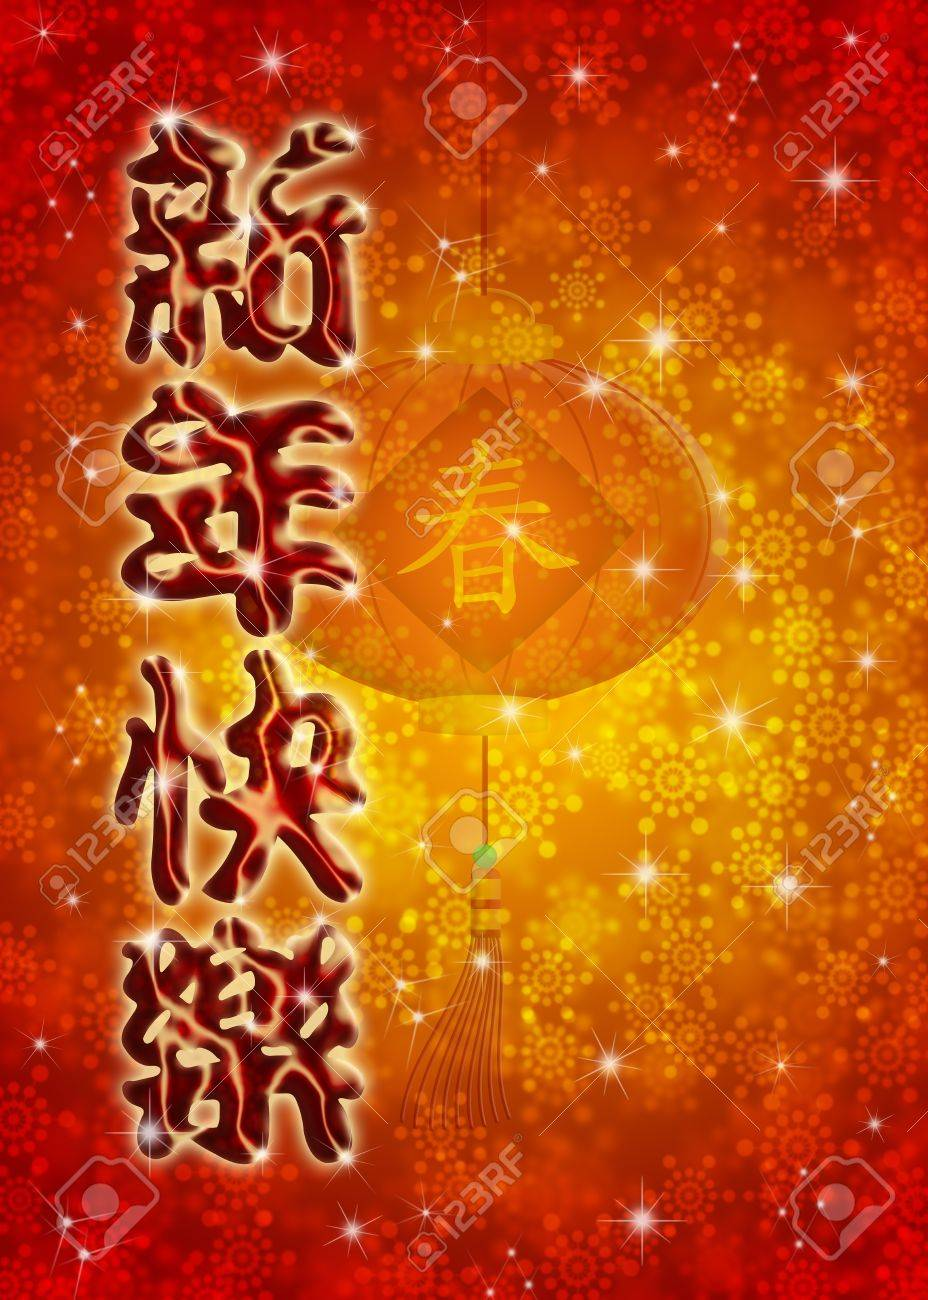 Chinese Happy New Year Text Calligraphy Greeting  and Lantern with Spring Text on Blurred Snowflakes Background Stock Photo - 11473973